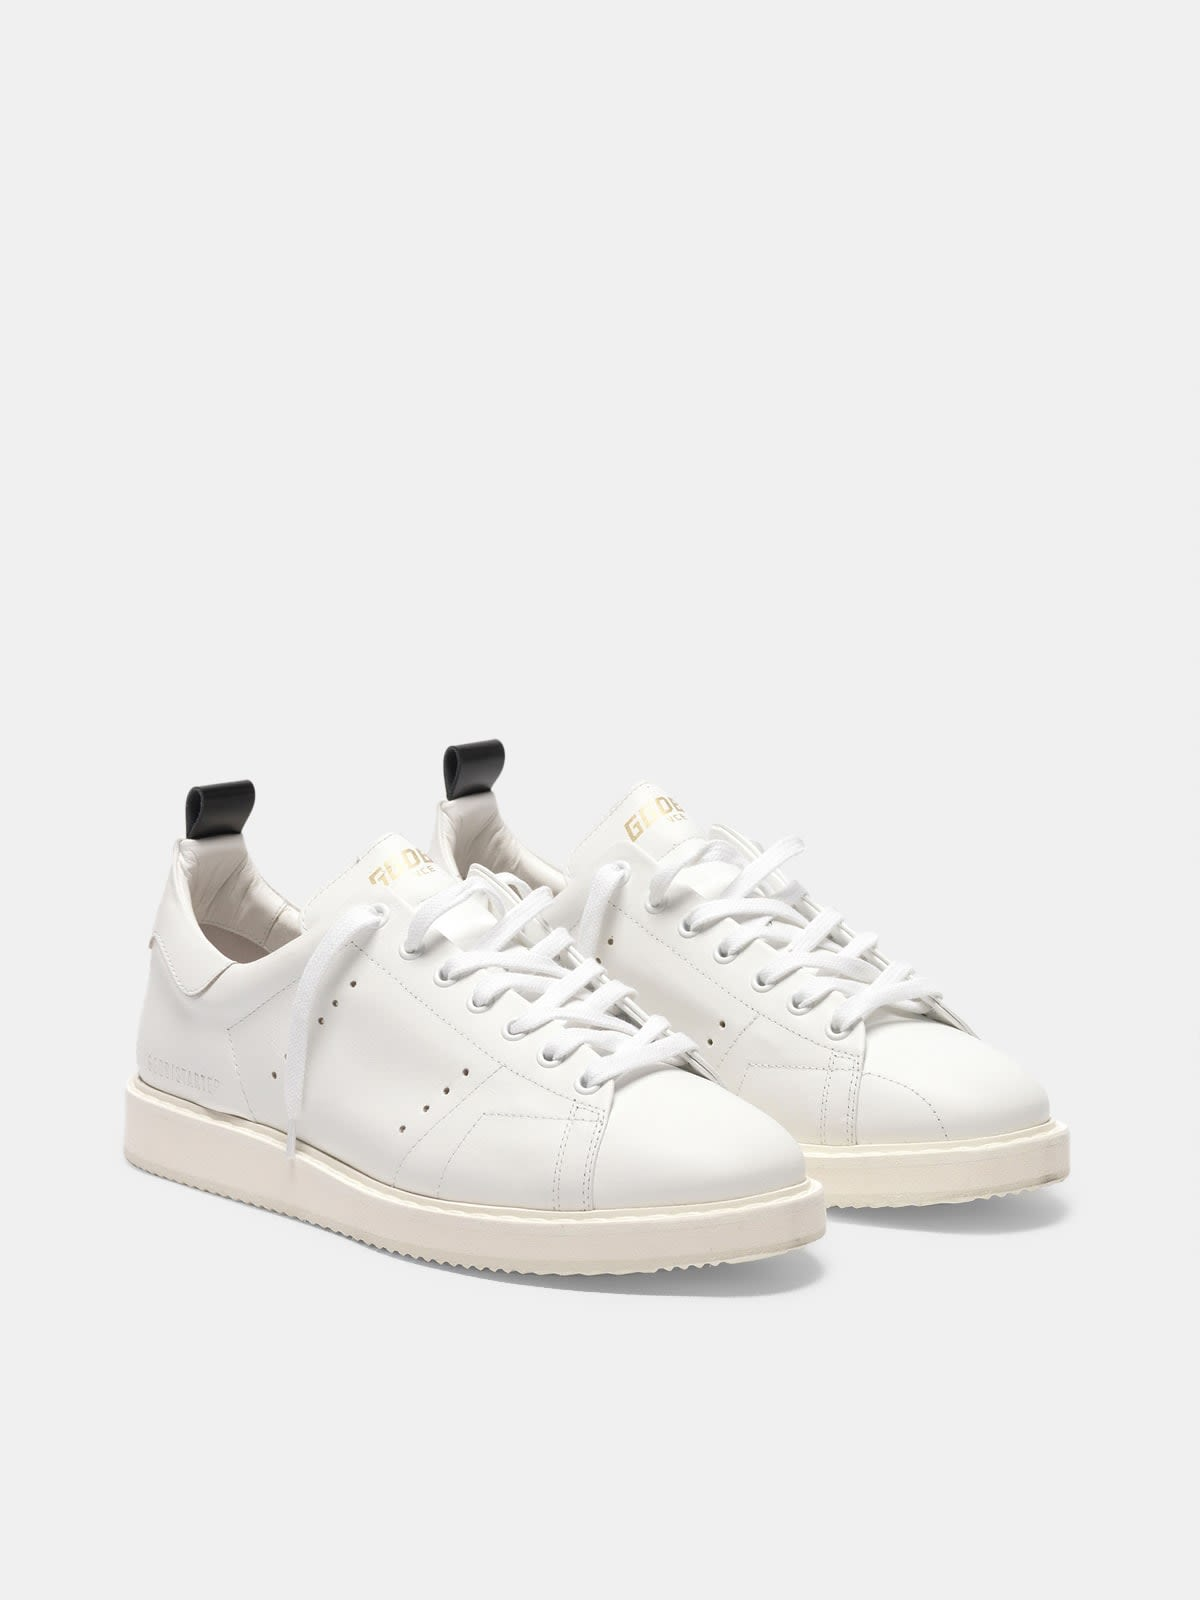 Starter sneakers in leather with printed star on the heel tab